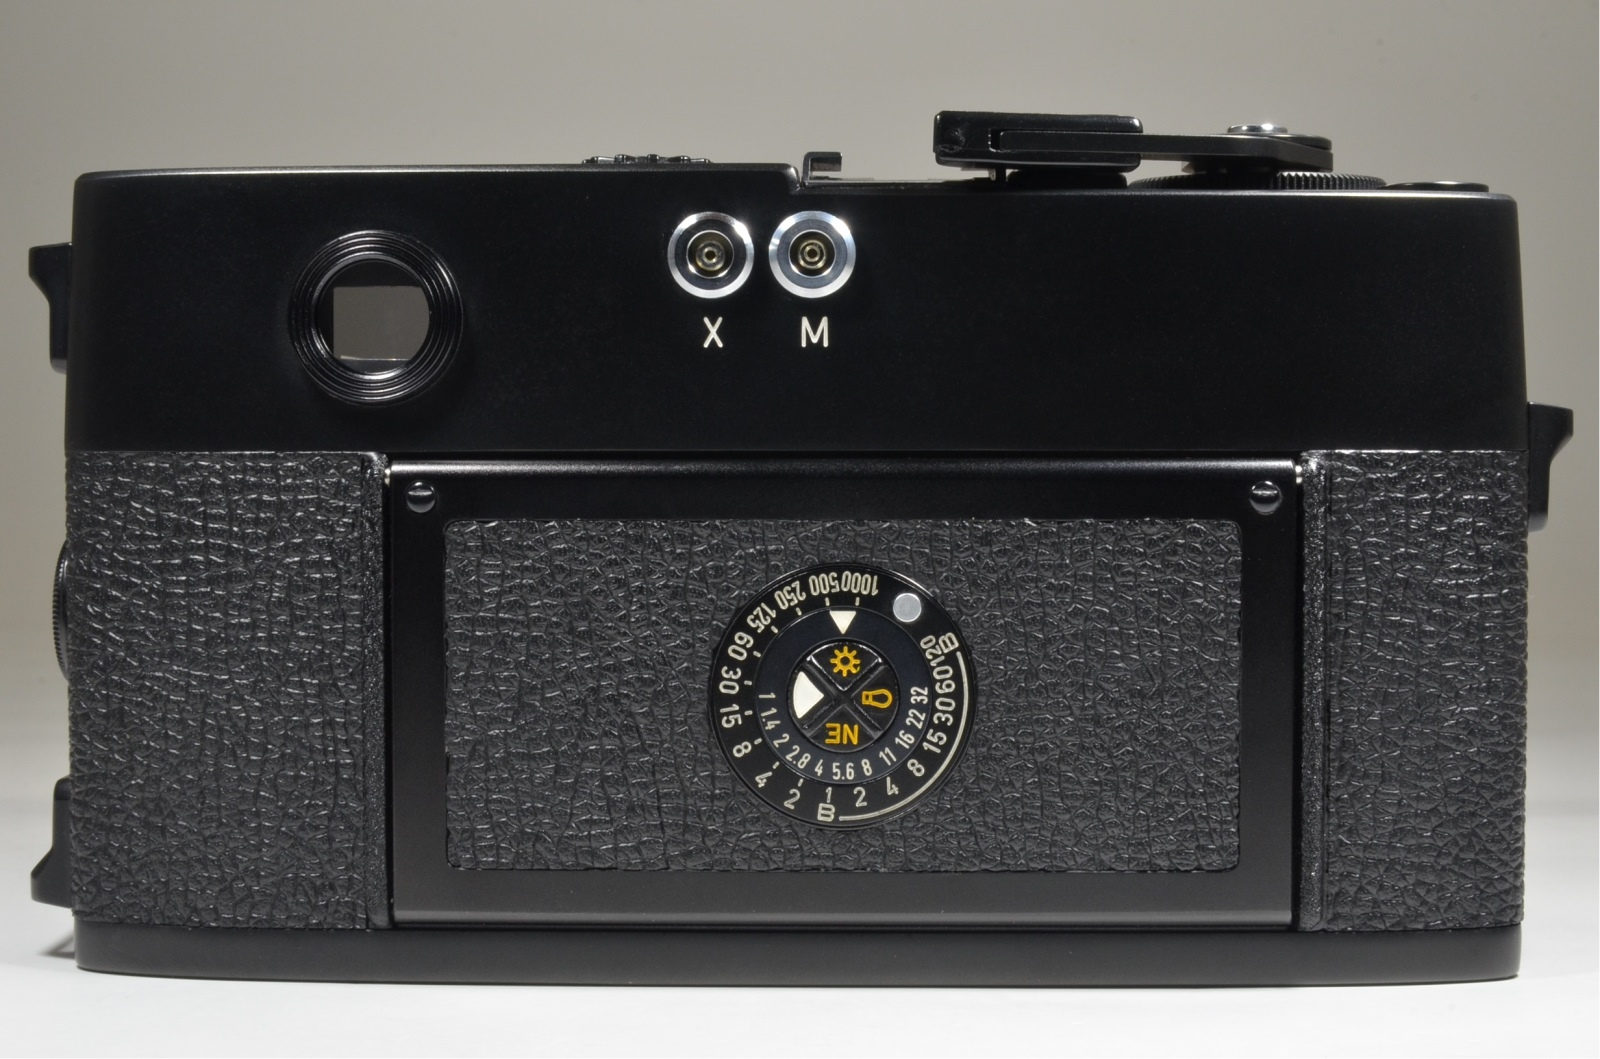 leica m5 black 3 lug serial no.1377872 year 1973 w/ half case